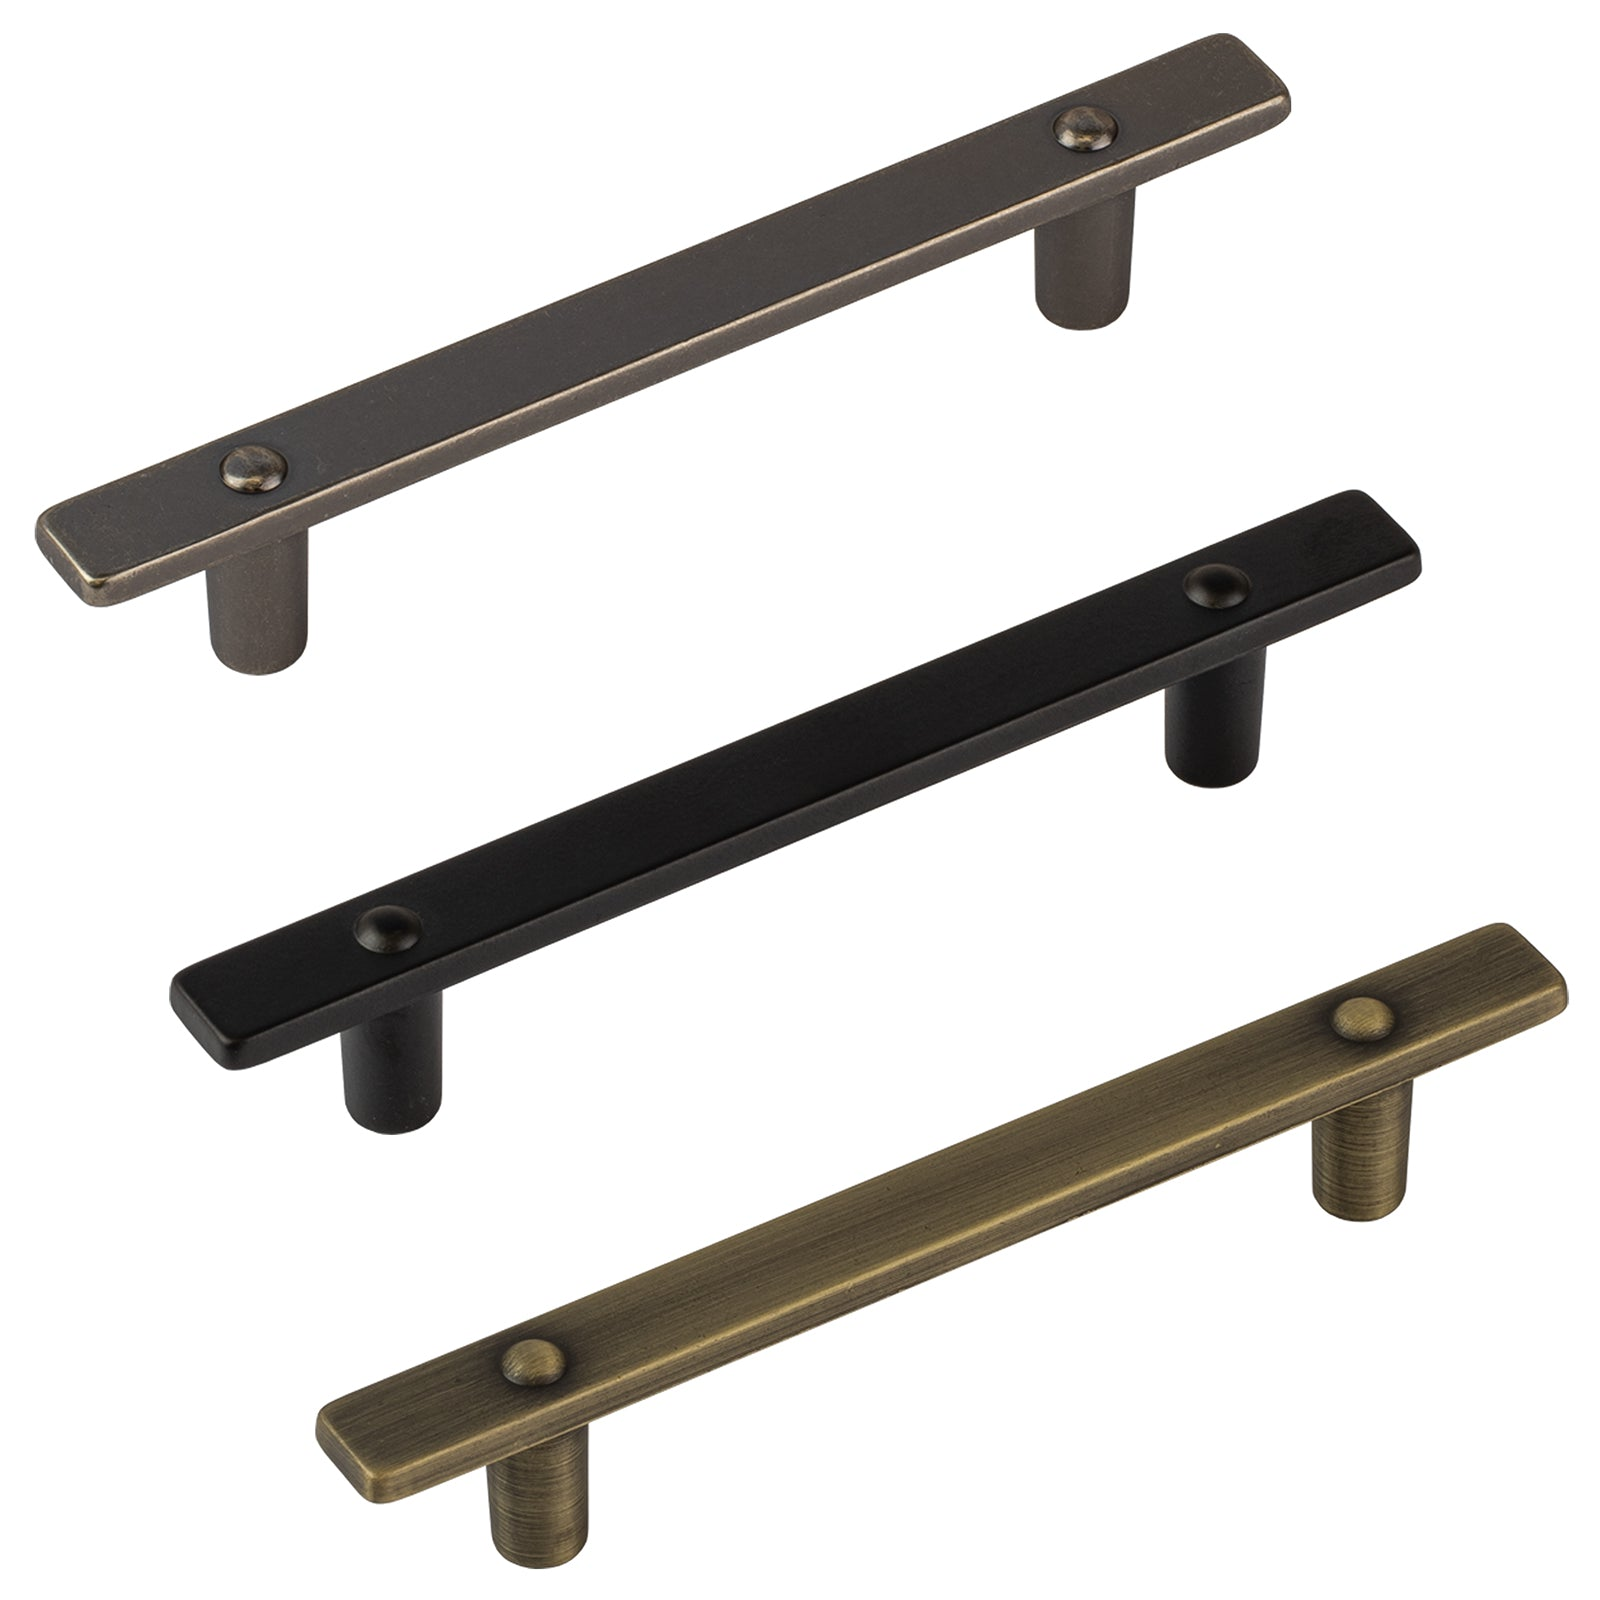 Lodge Pulls from the Industrial Cabinet Furniture Collection